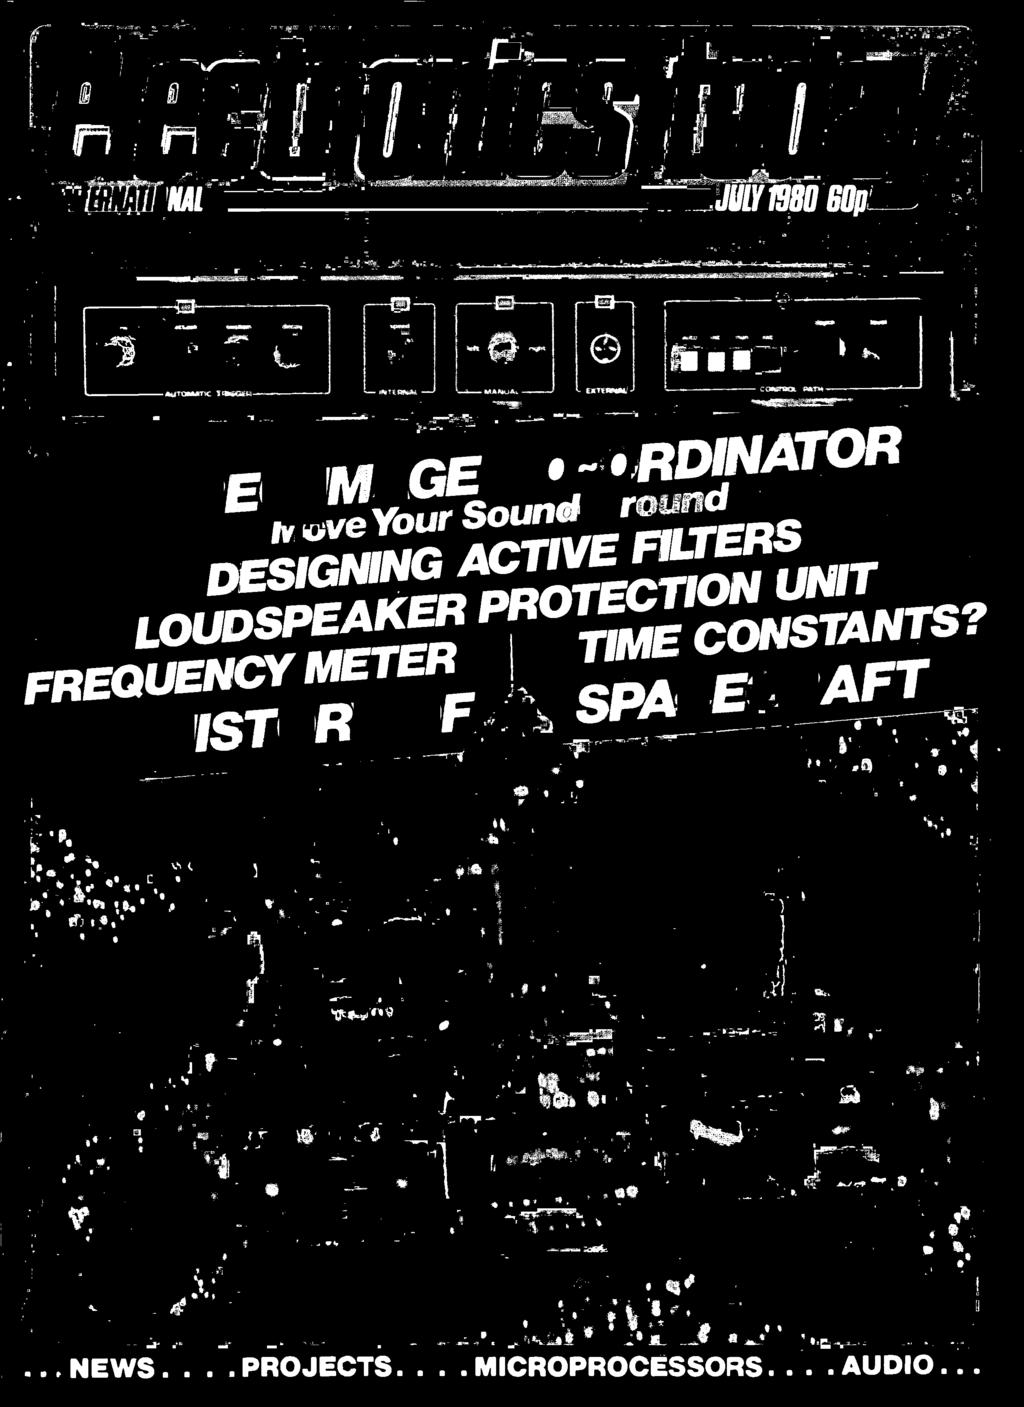 Stereo Spacecraft History Of Image Co Ordinator Active Filters Four Digit Frequency Counter Meter Ttl Cmos Schematic Constants